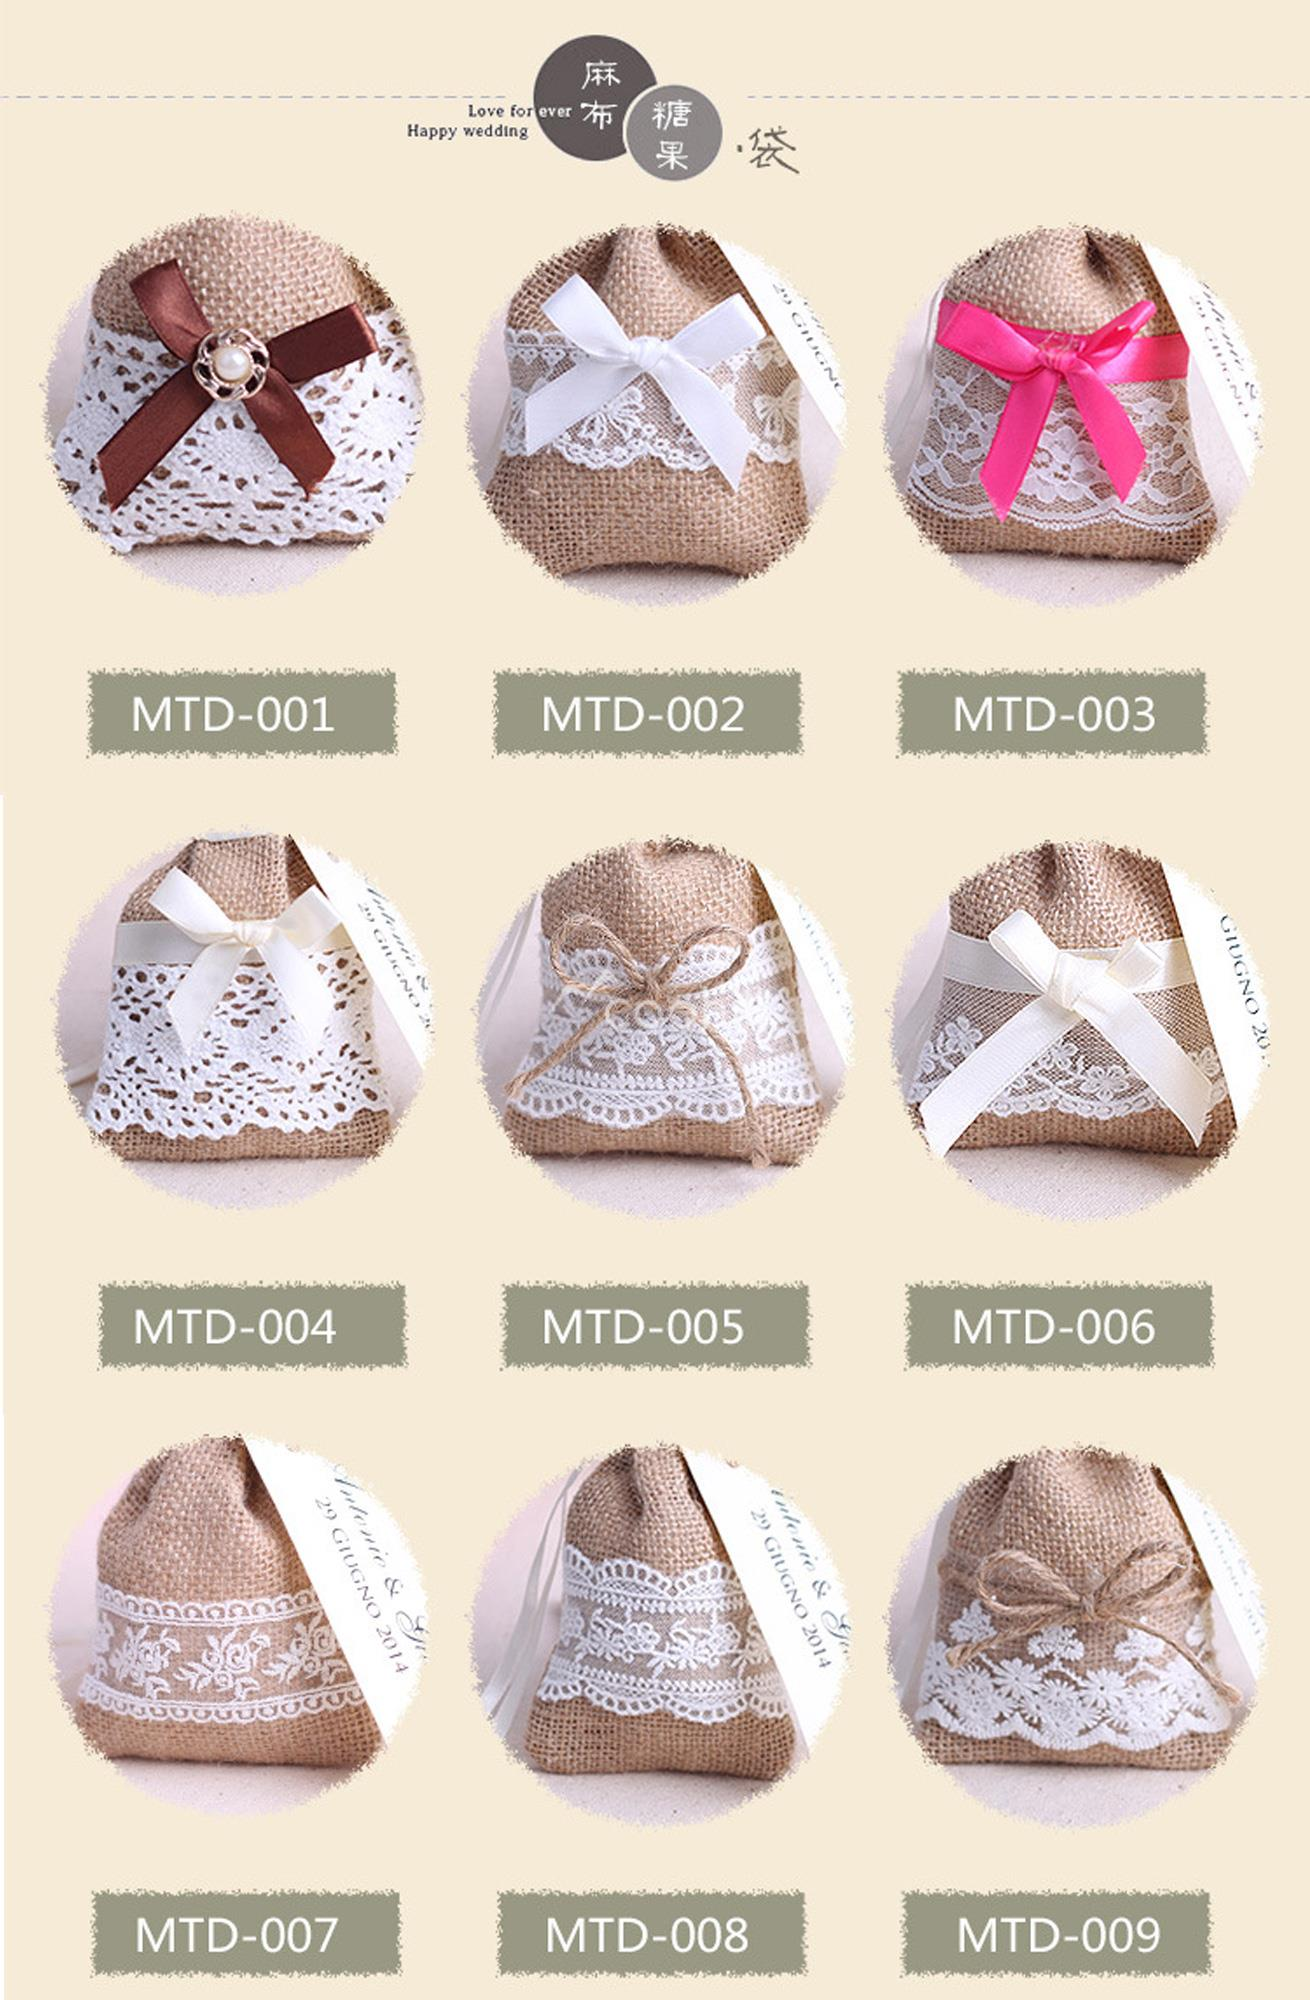 100pcs mixed style Jute hessian candy bags burlap gifts bags lace ...